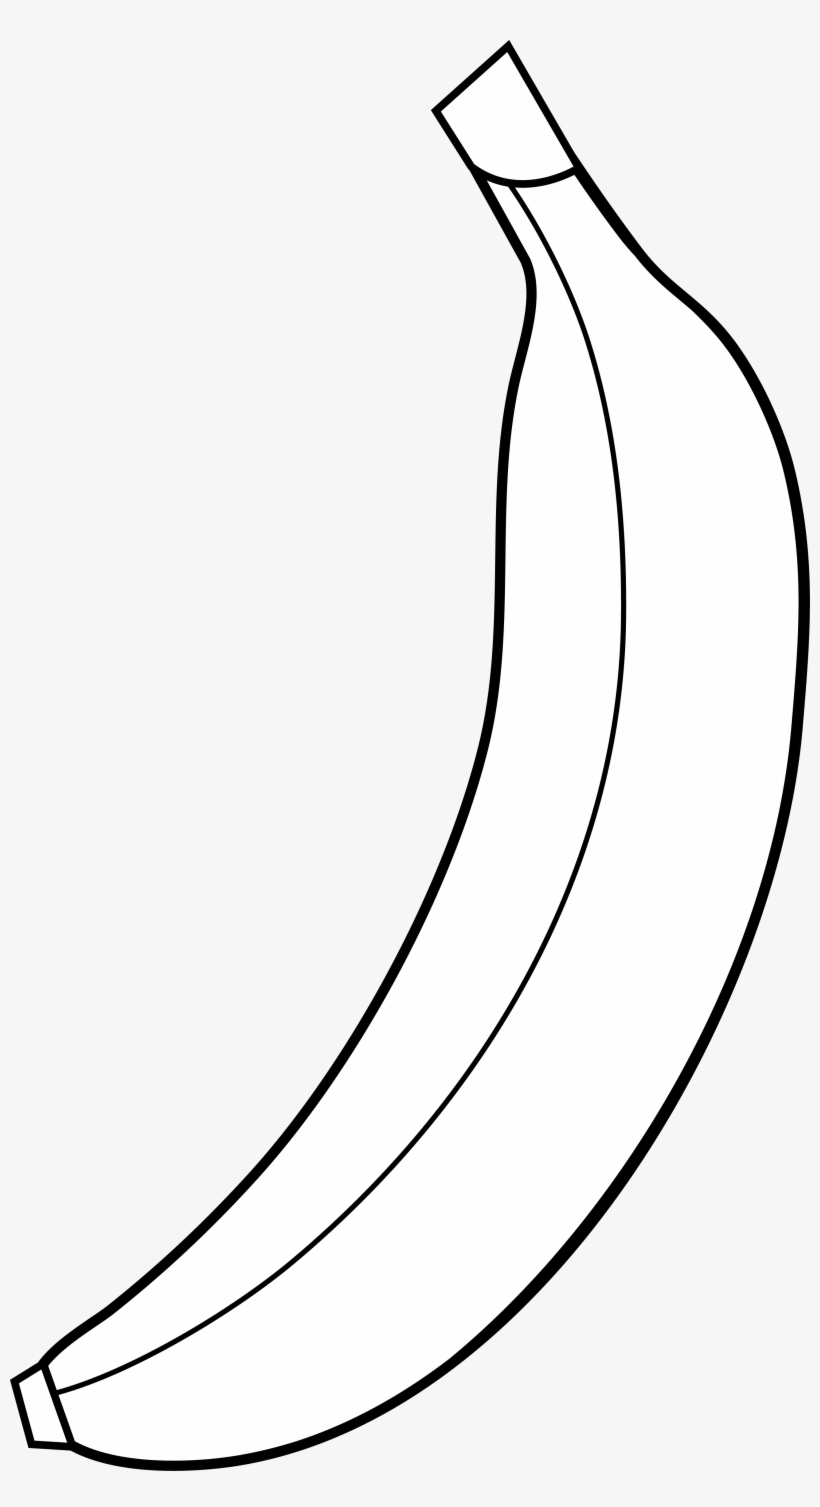 Black and white clipart images of banana vector transparent stock Banana Clipart 5 Image Clipartcow - Black And White Clipart Of A ... vector transparent stock